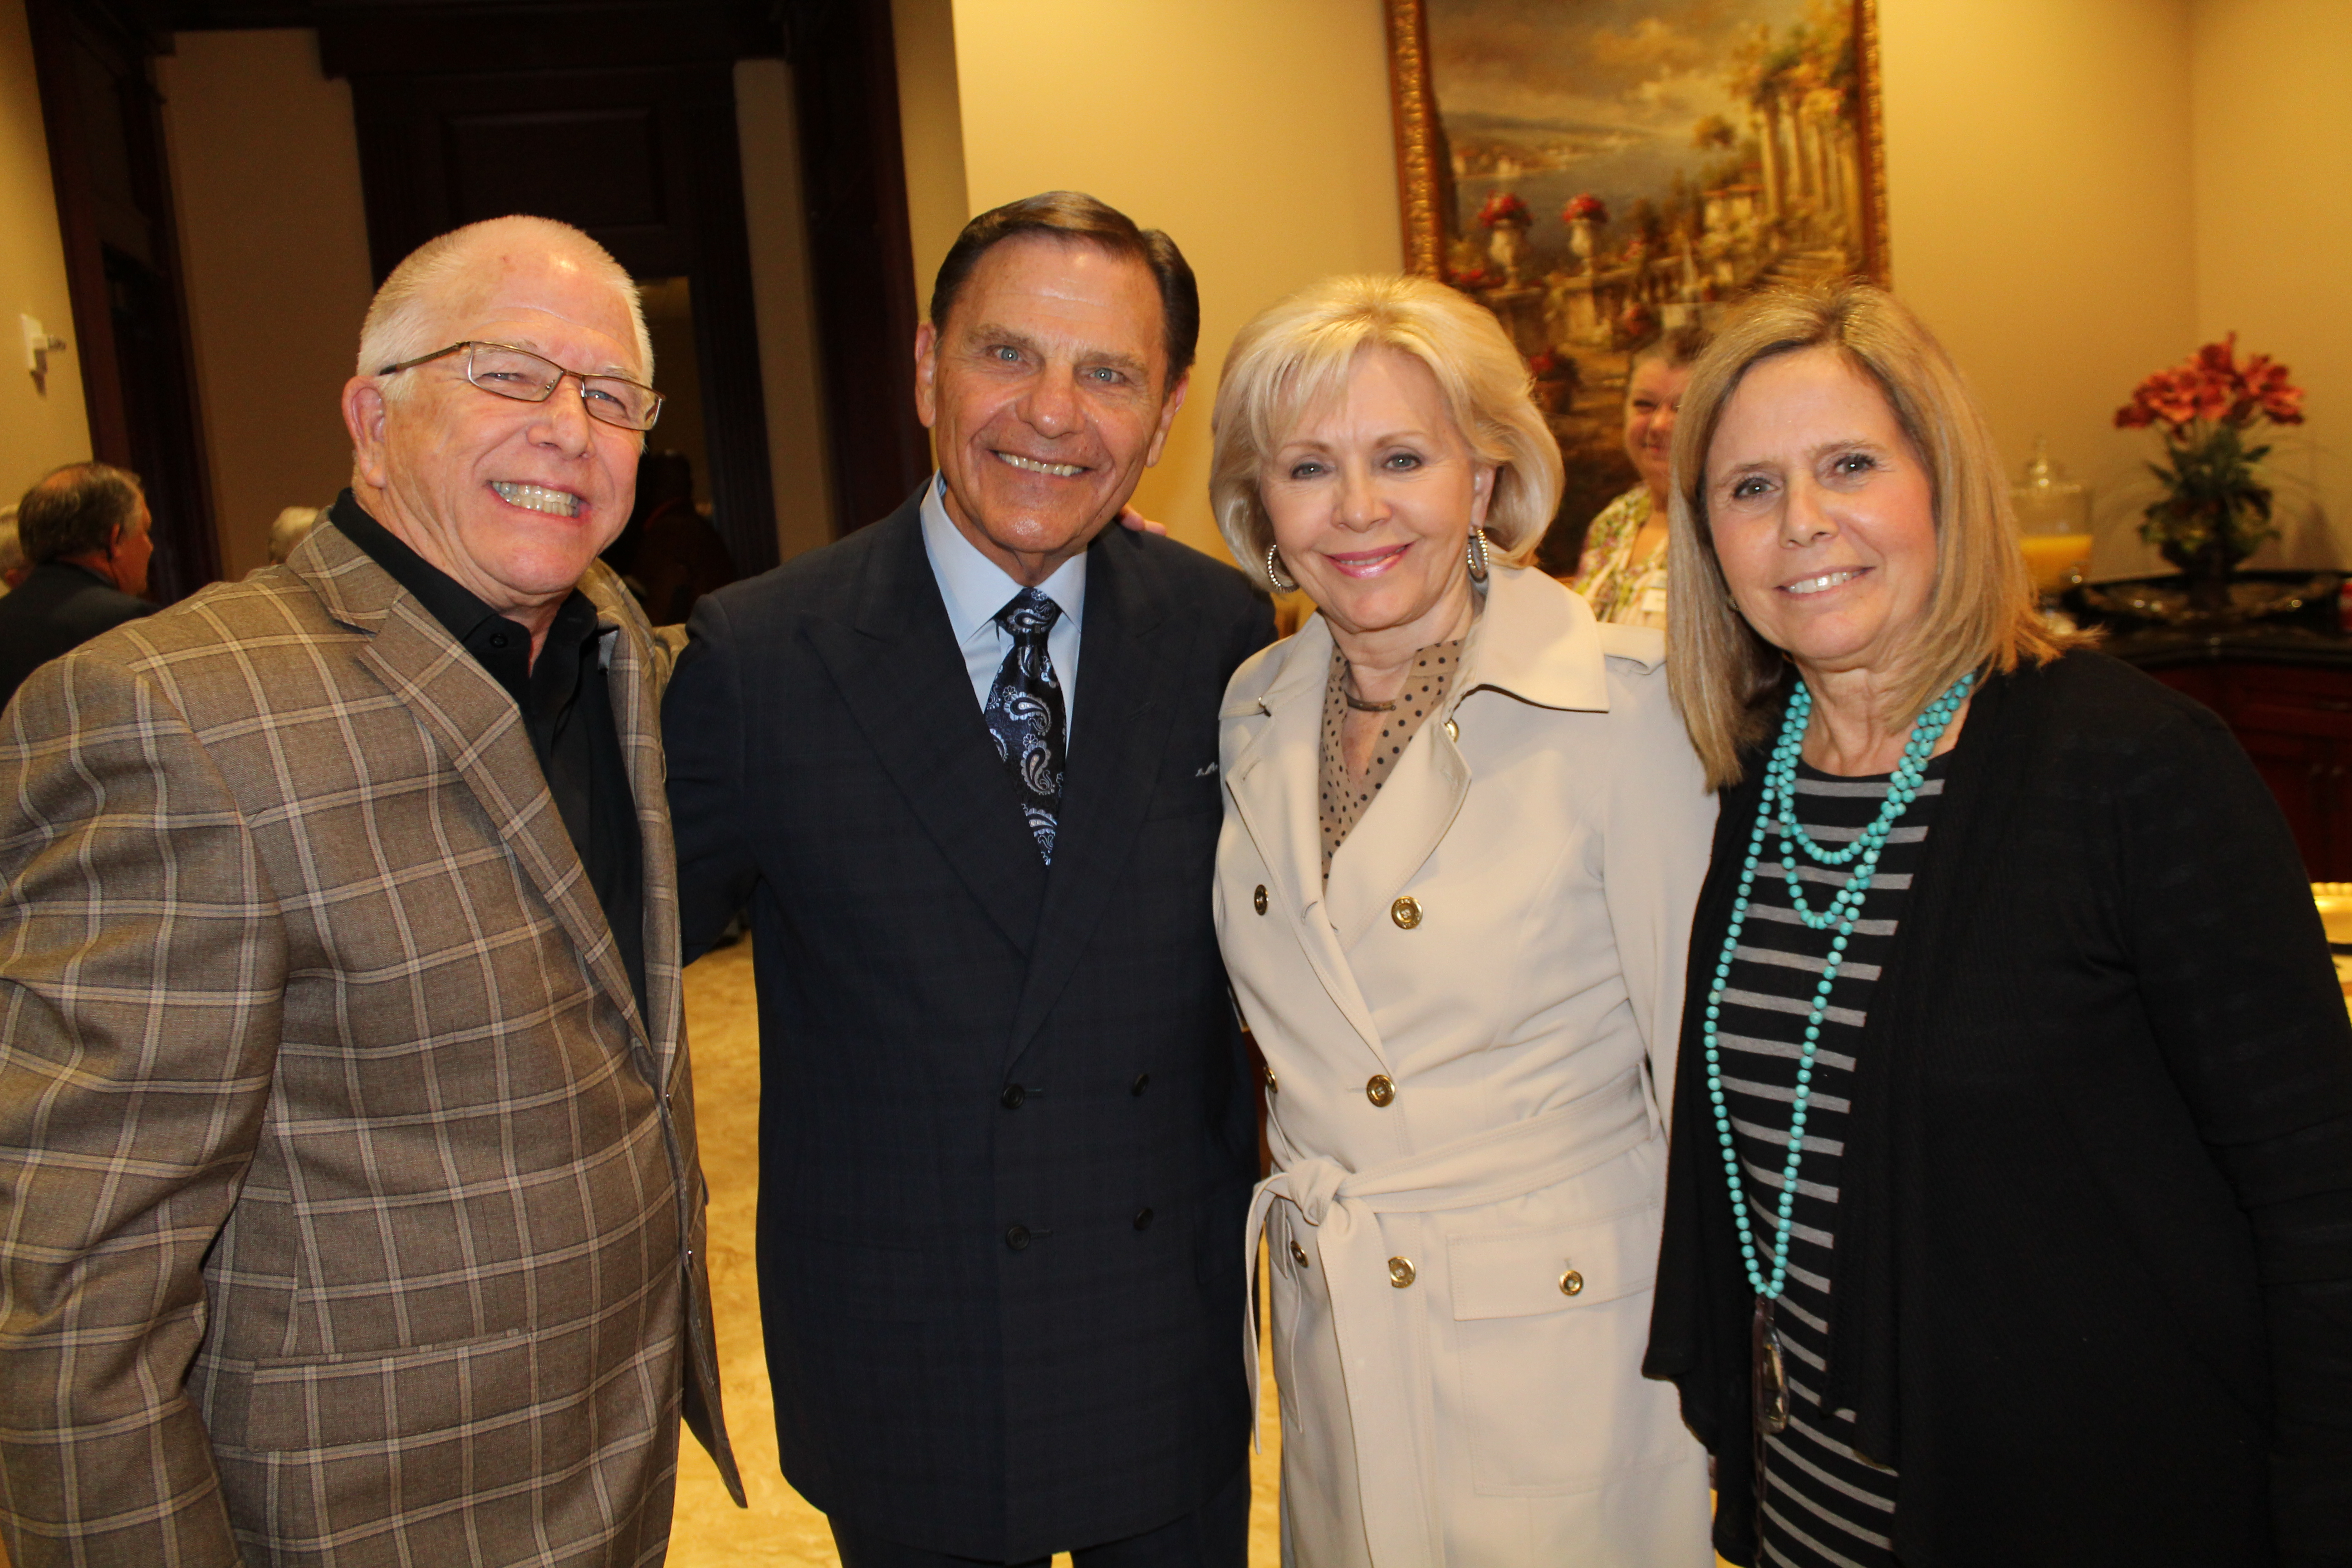 Our Pastors Kenneth and Gloria Copeland preaching at a conference we hosted October of 2015.